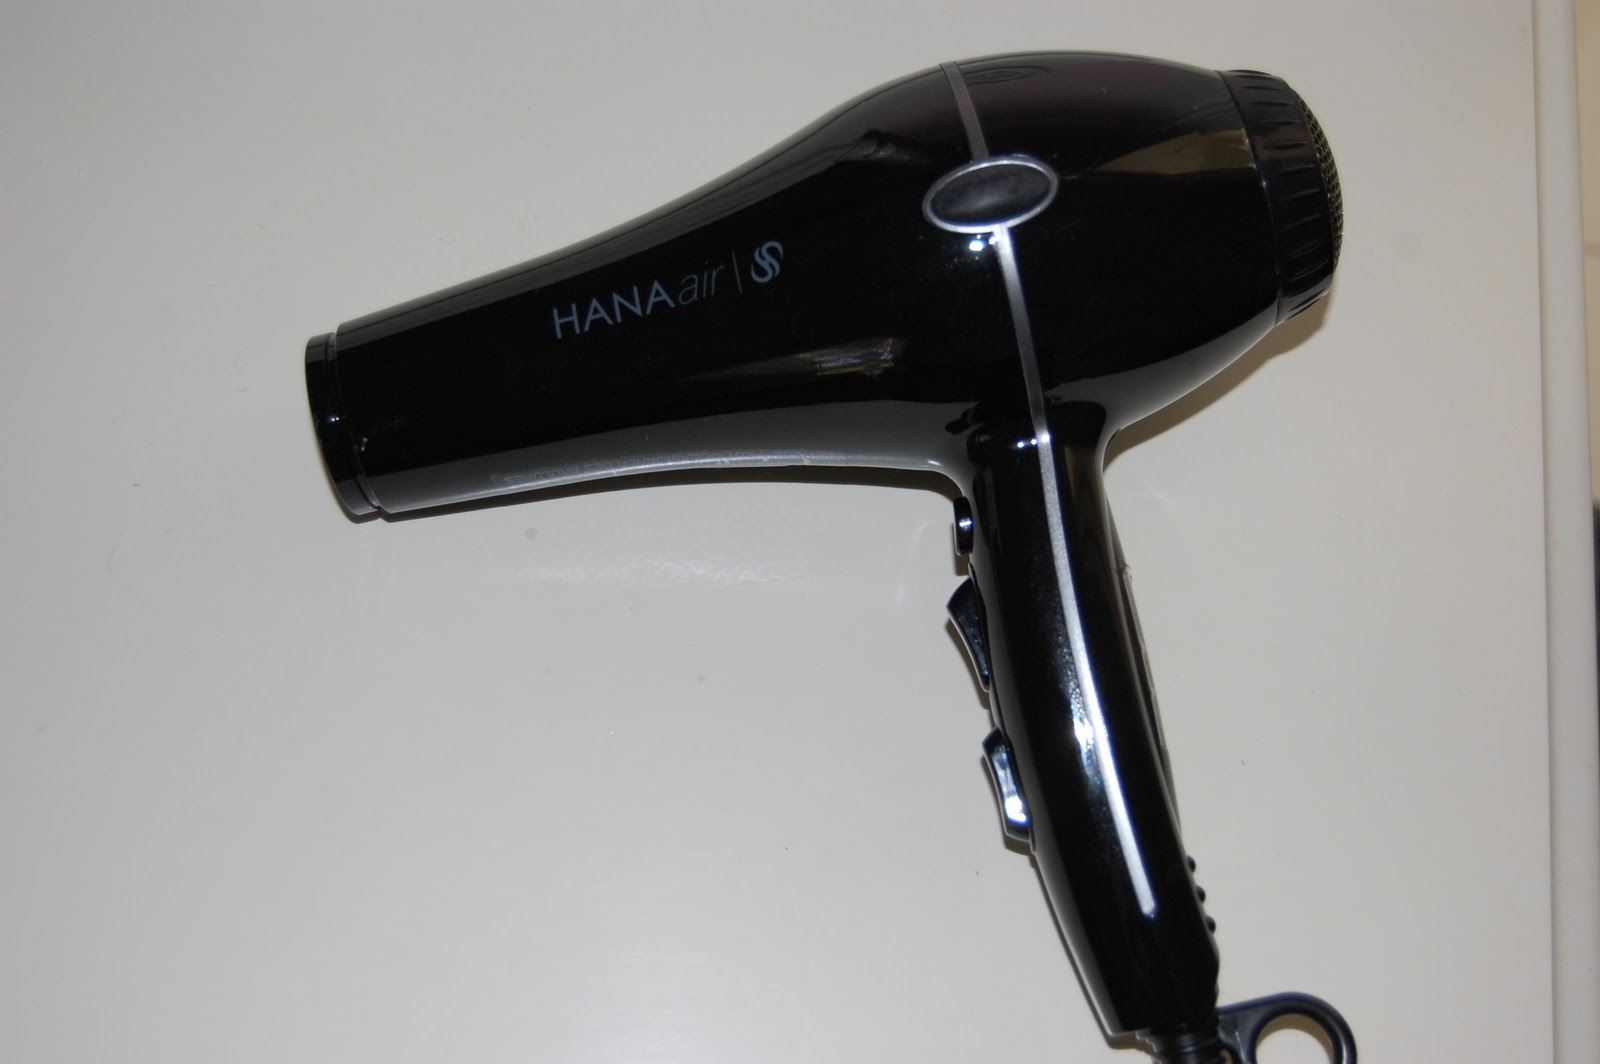 Blown Away: The Invention of the Hairdryer